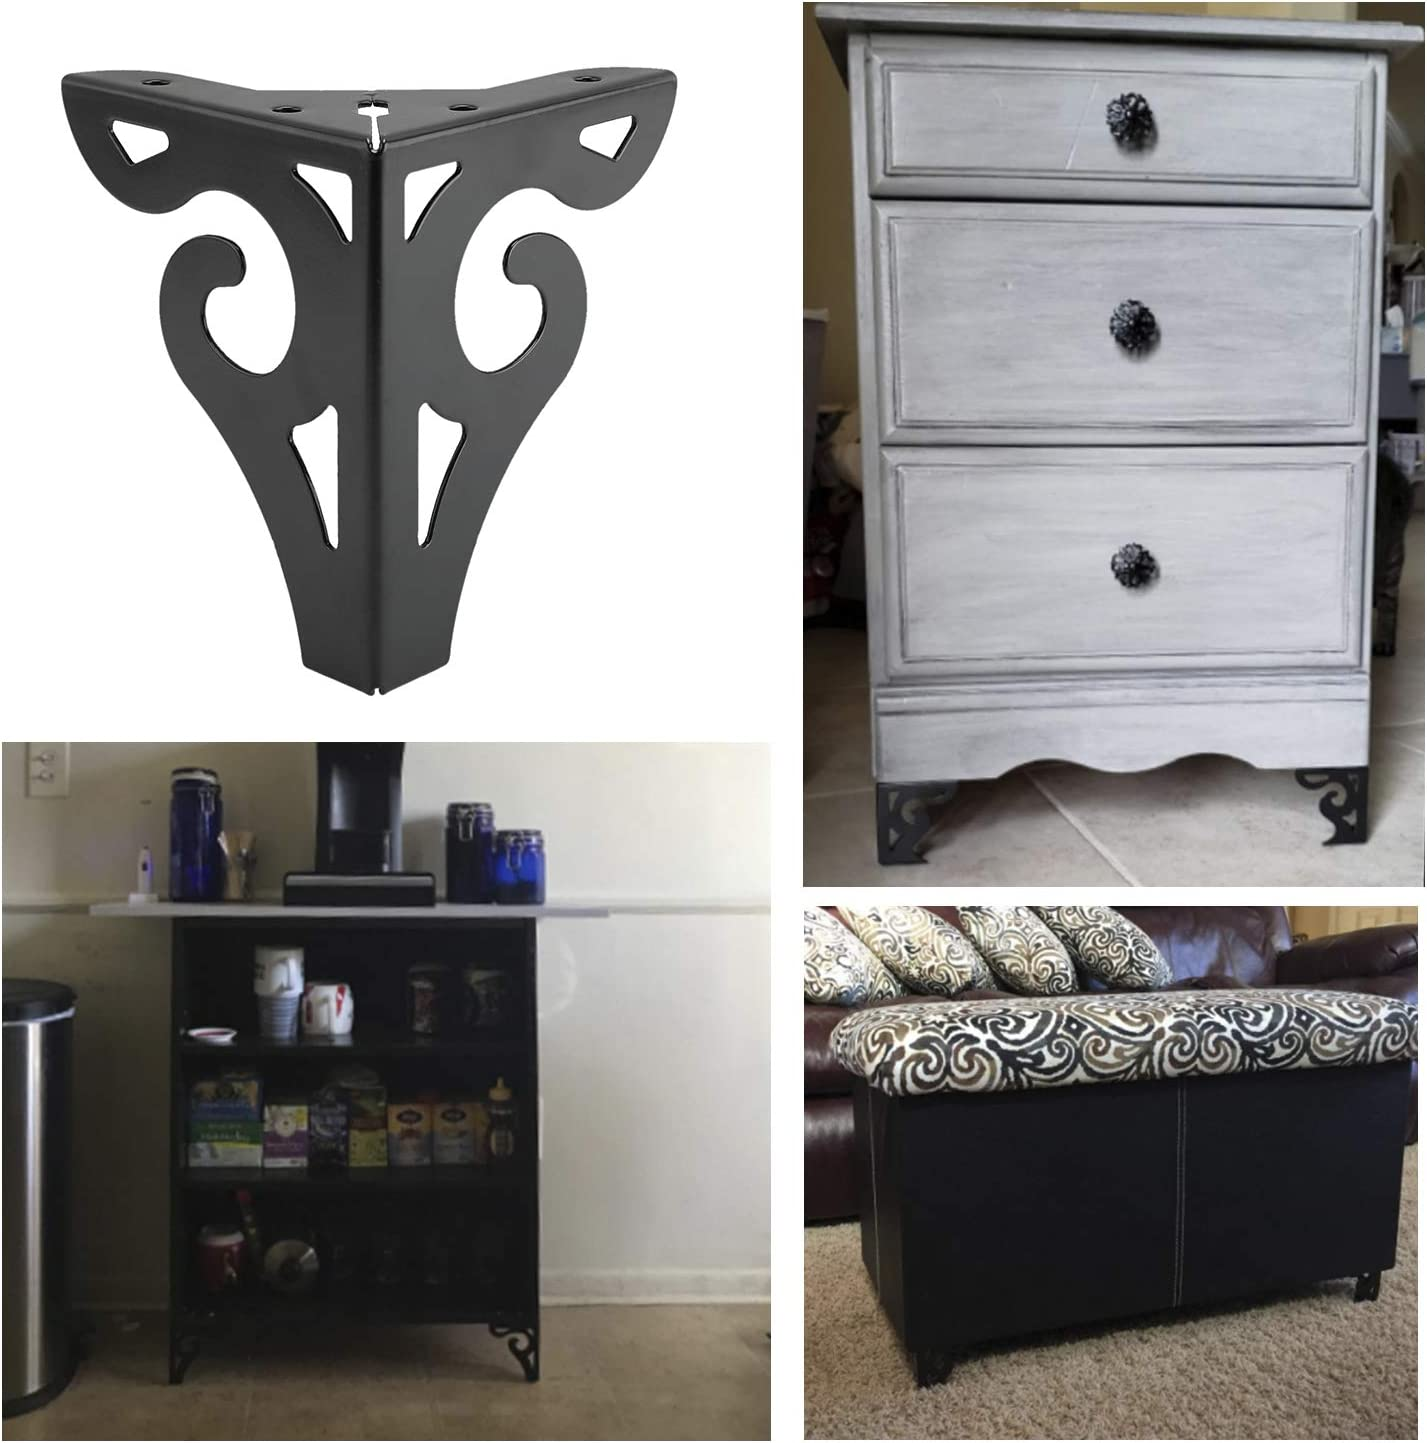 Height:5inch DasMarine Furniture Legs,5 inch Height Hollow Out Modern Furniture Sofa Legs Metal Black Finished for Sofa Table Cabinet Cupboard Set of 4